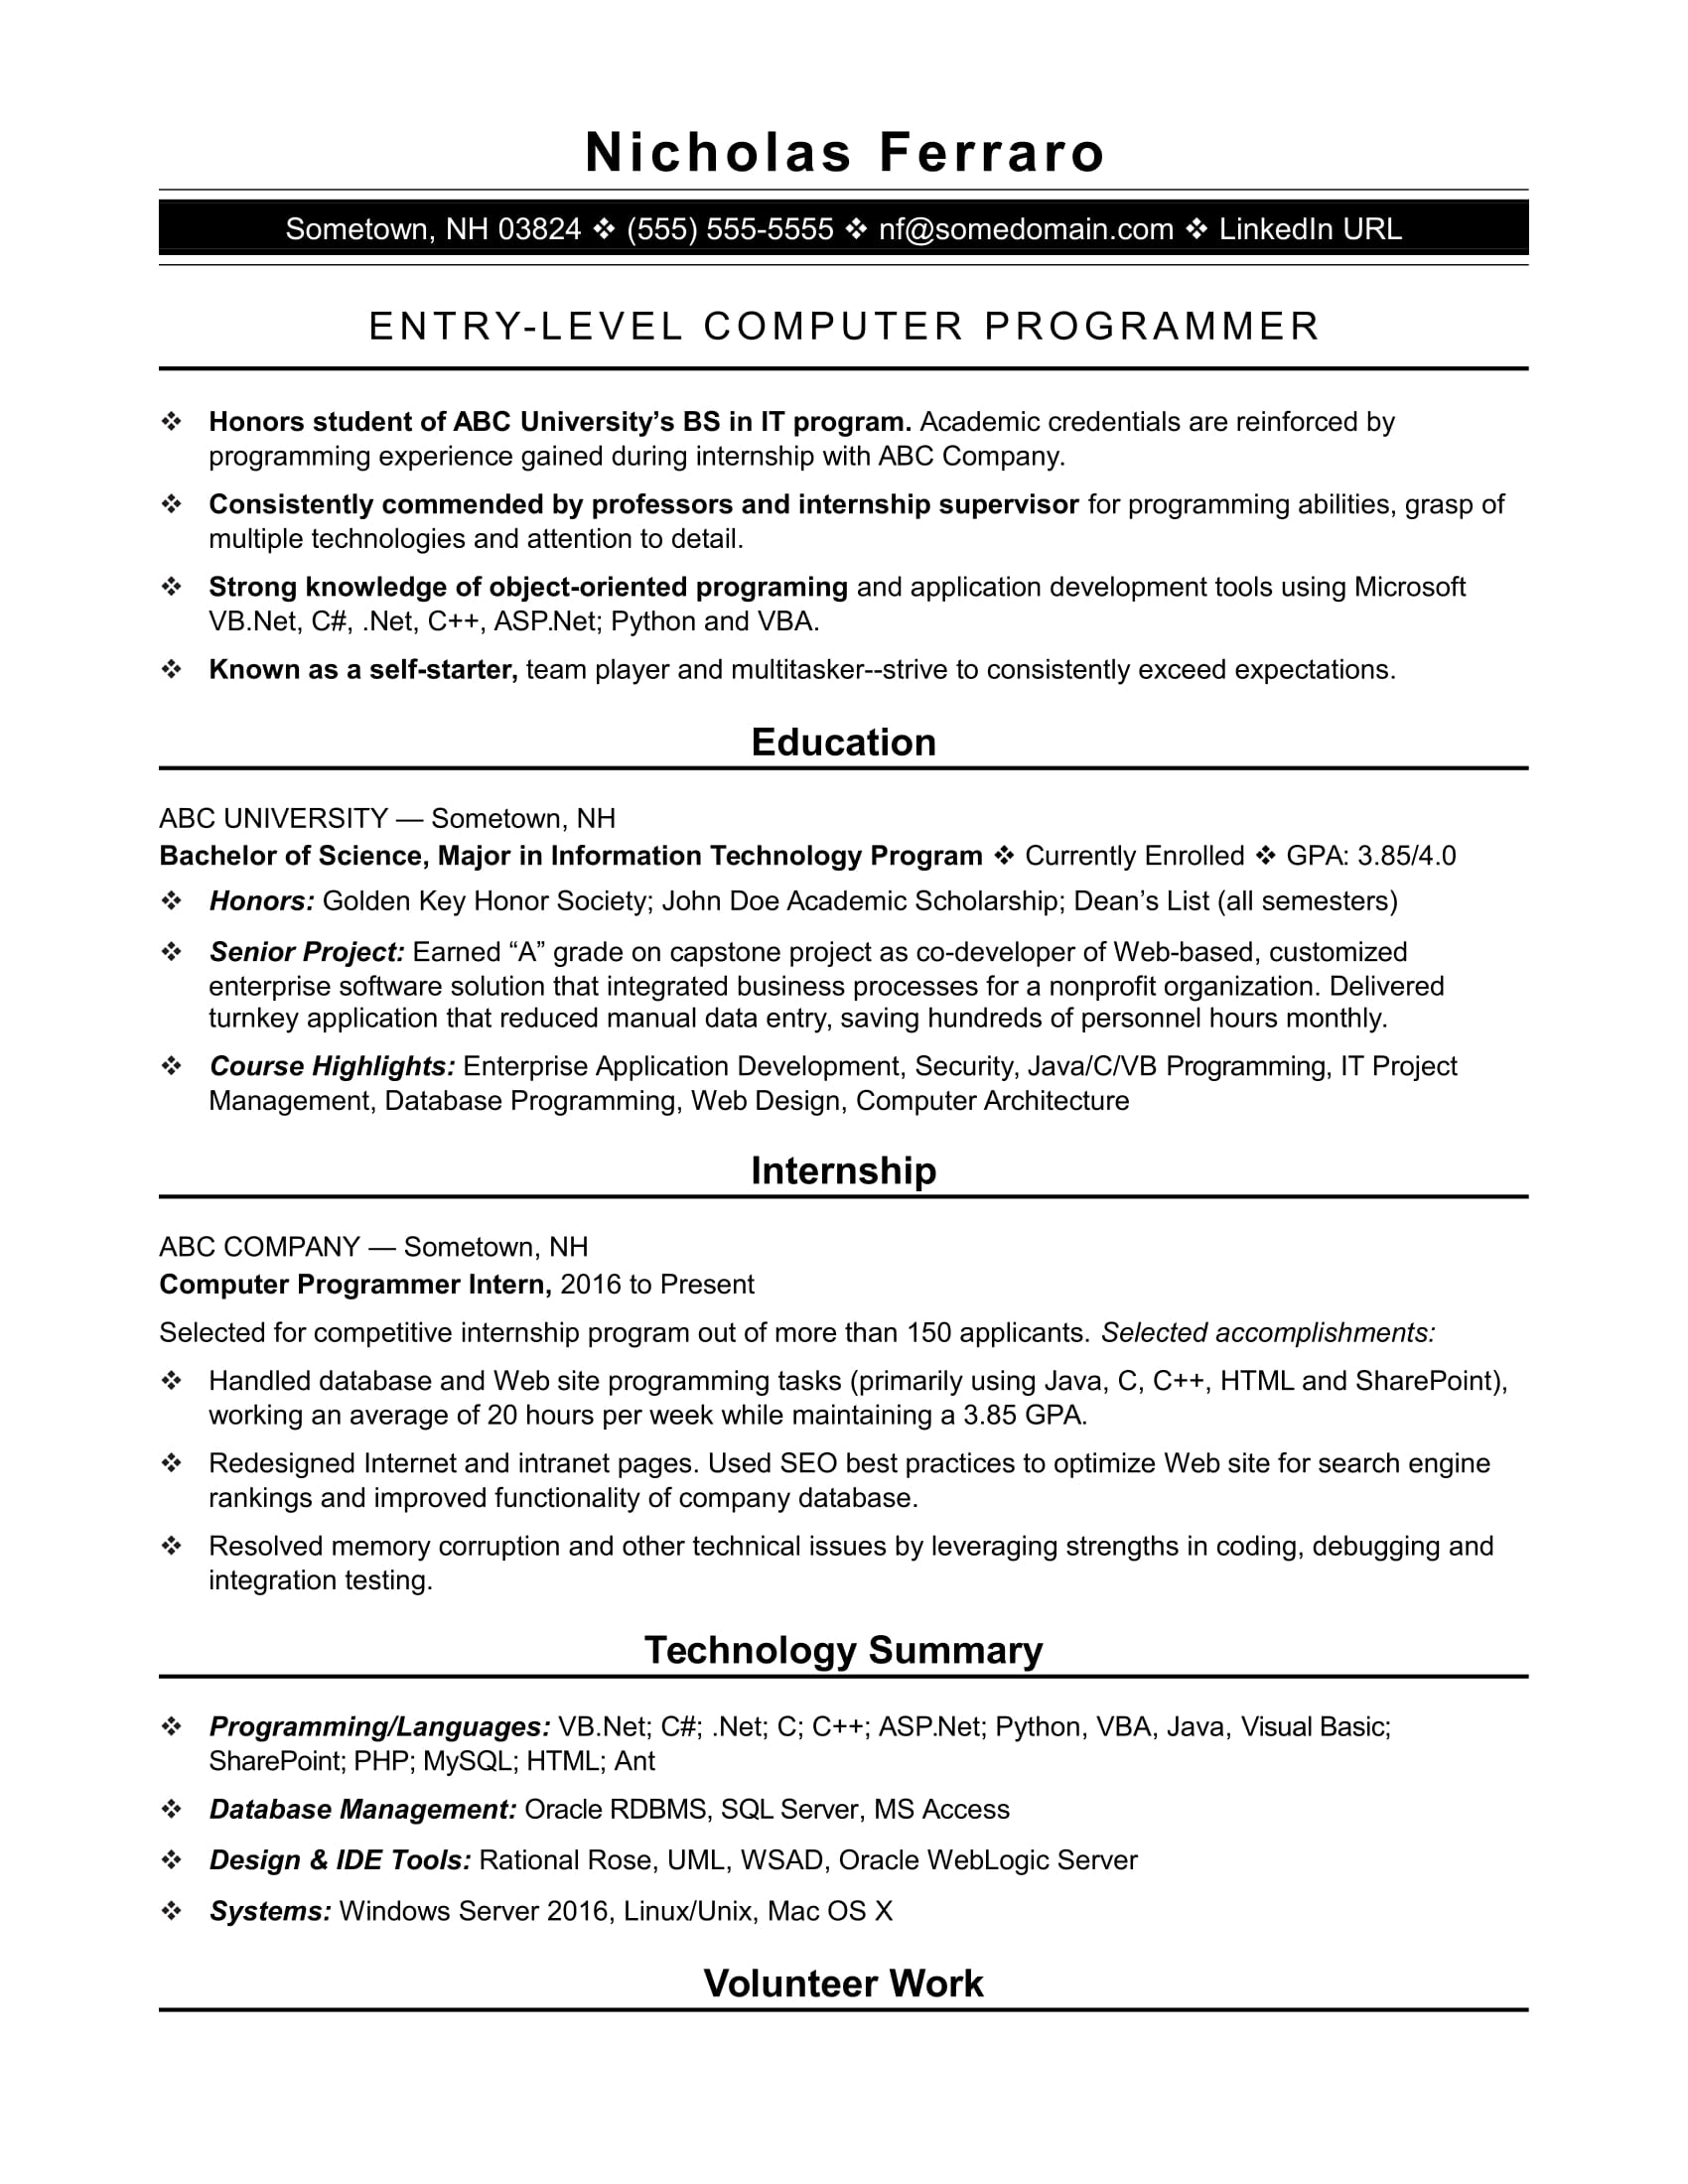 Oracle Apps Developer Cover Letter Sample Resume For An Entry Level Computer Programmer Monster